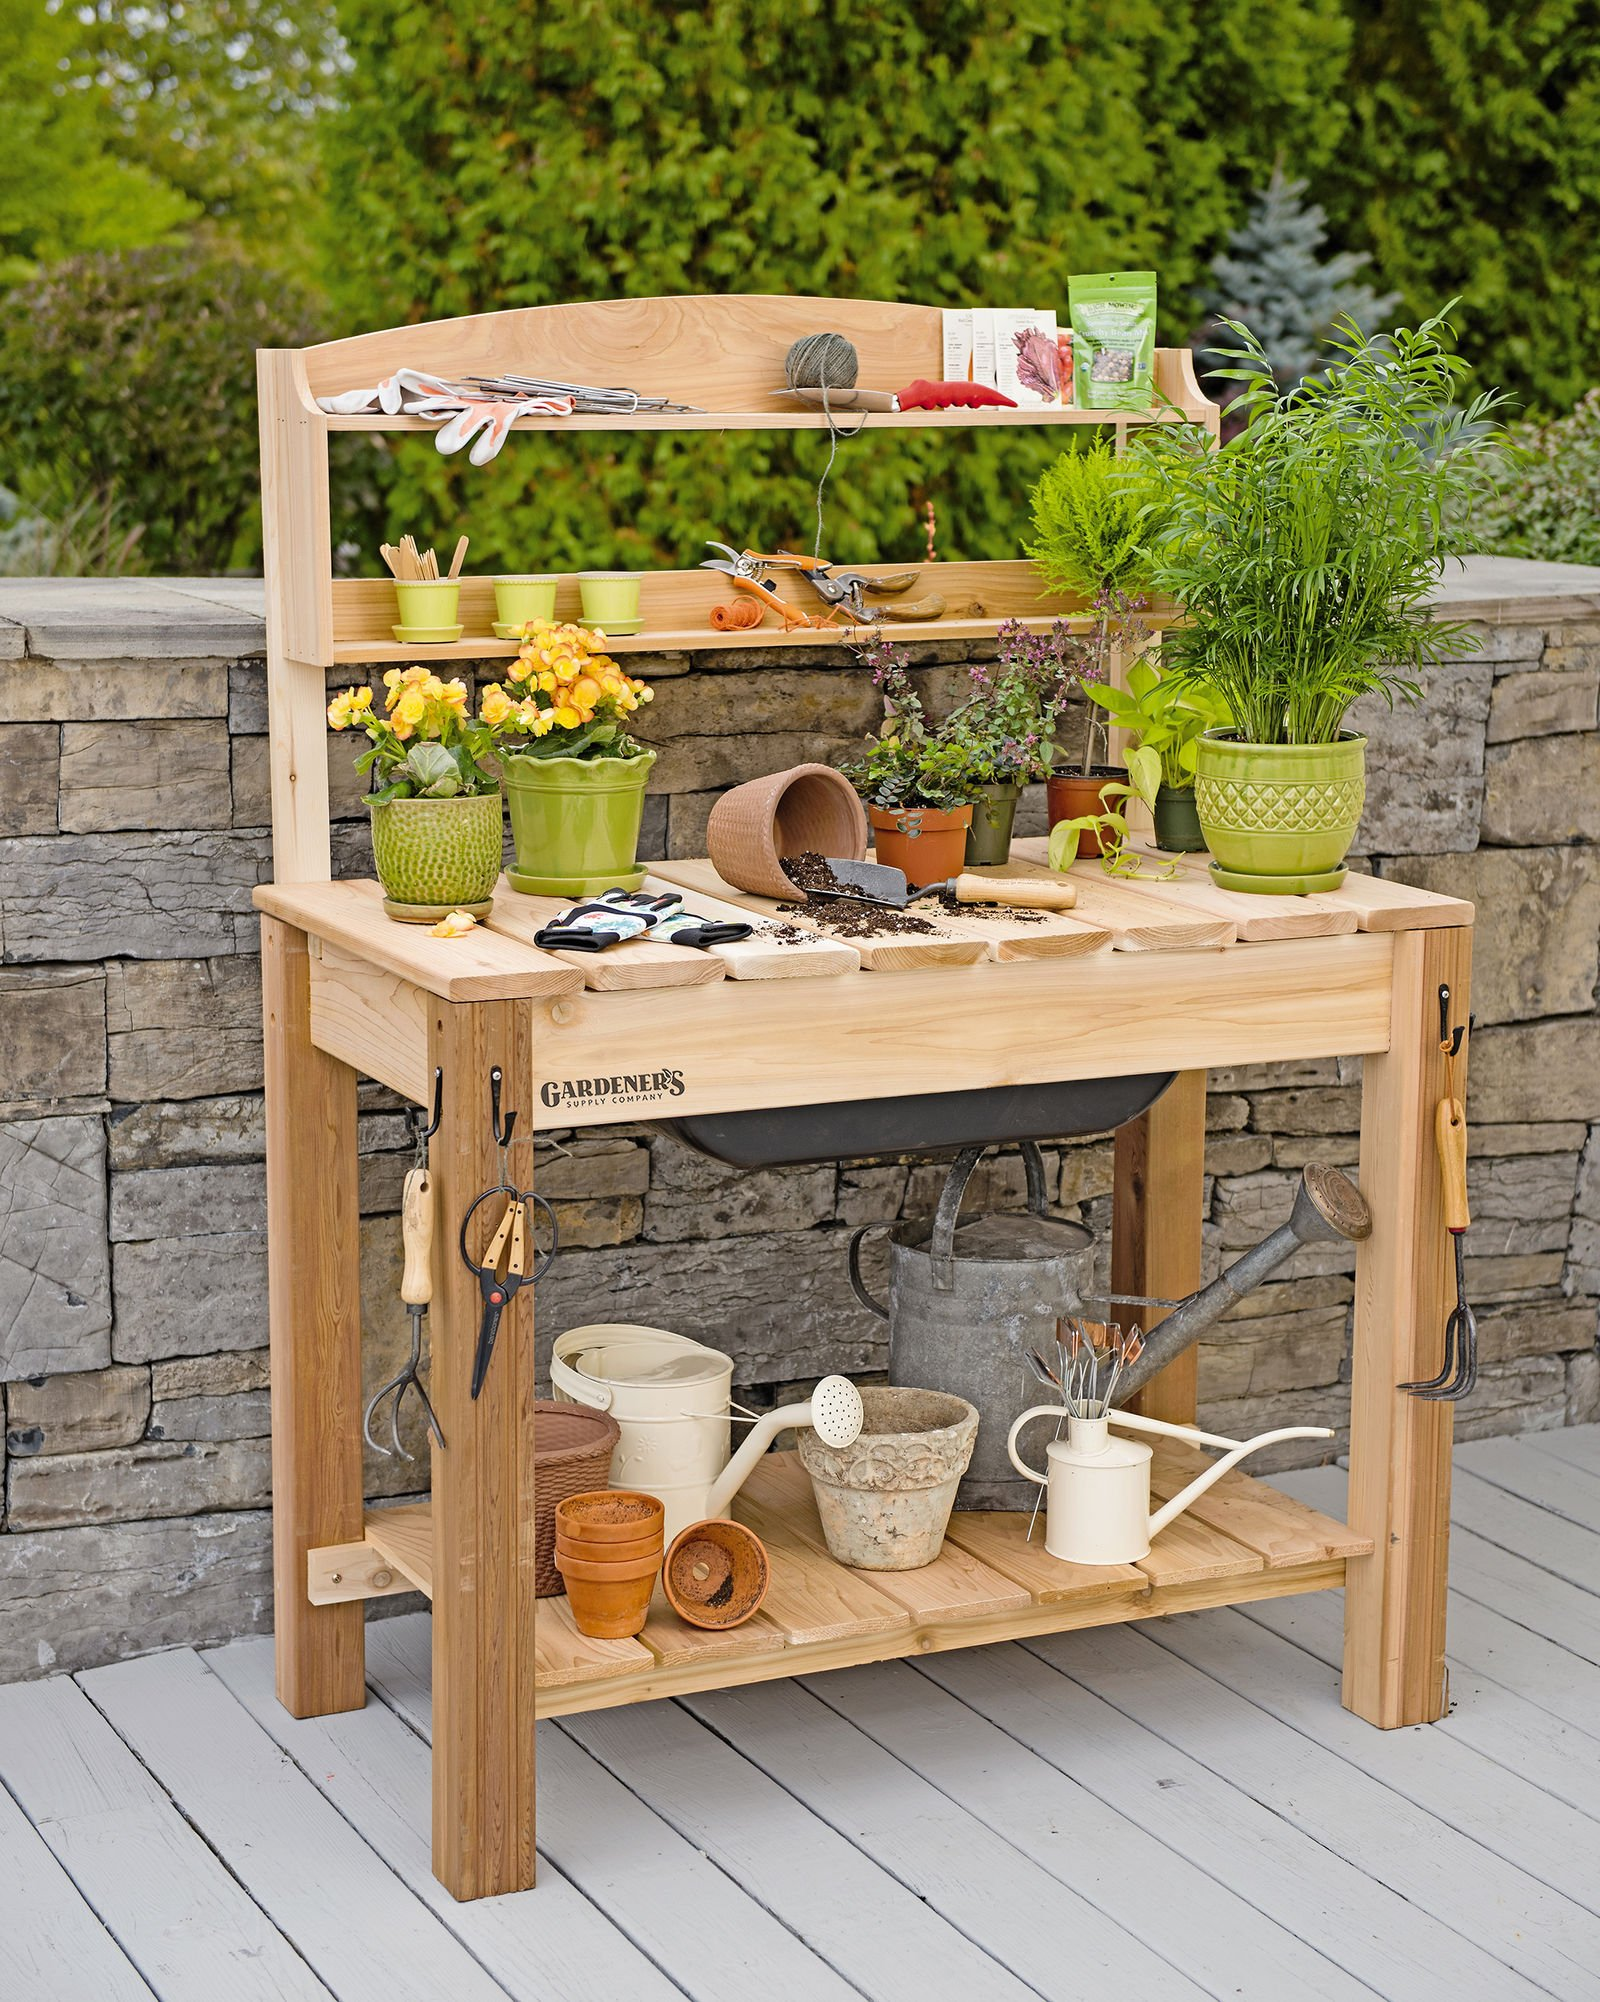 GSC Potting Bench with Shelves by Gardener's Supply Company